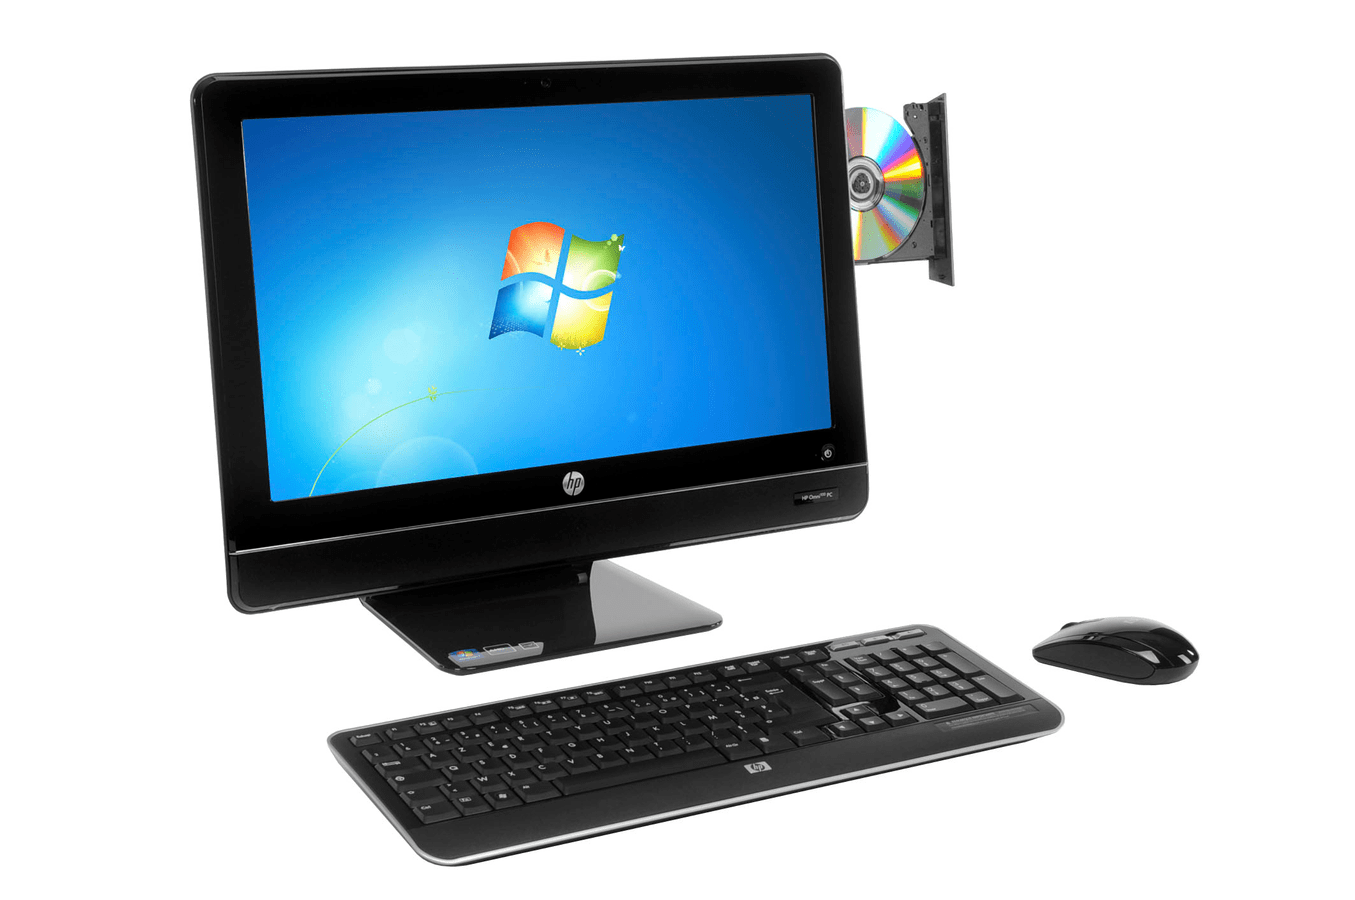 Darty Ordinateur Bureau Pc De Bureau Hp Omni 100 5000 Fr Omni100 5000fr 3342433